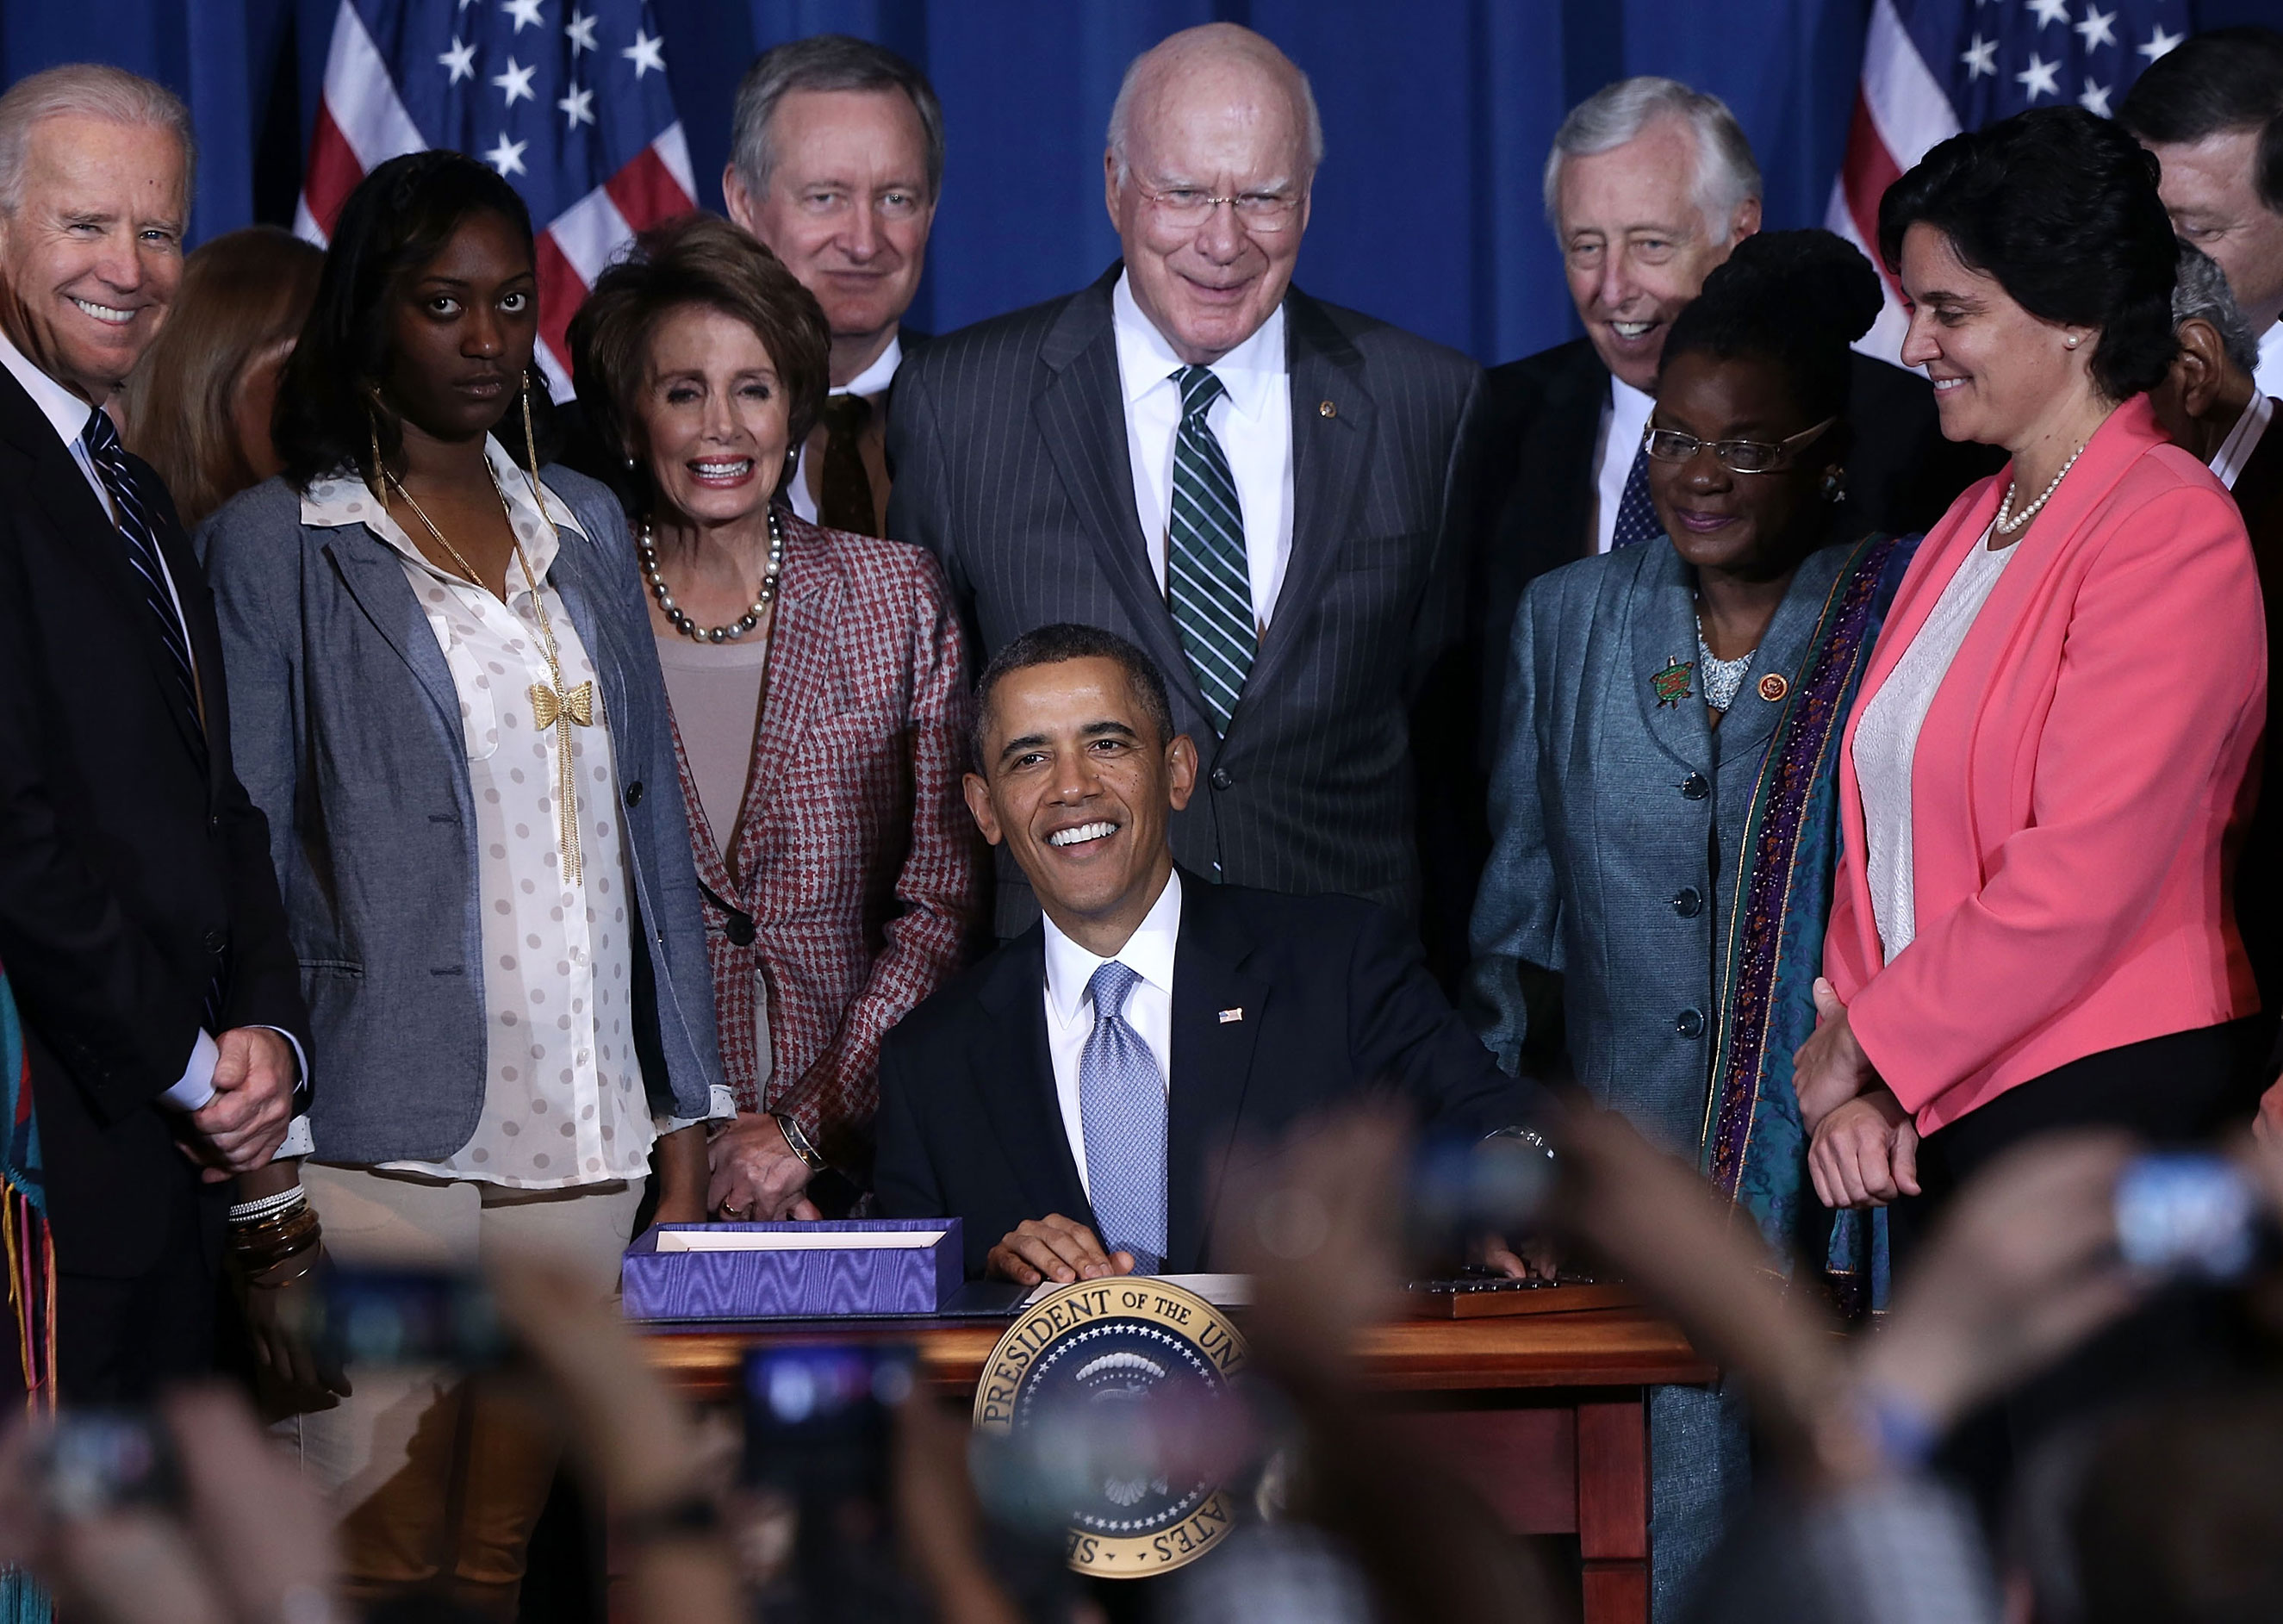 U.S. President Barack Obama (center), joined by (left to right) Vice President Joseph Biden, trafficking survivor Tysheena Rhames, House Minority Leader Representative Nancy Pelosi, Senator Michael Crapo, Senator Patrick Leahy, House Minority Whip Rep. Steny Hoyer, Representative Gwen Moore, and Director of Public Policy of Casa de Esperanza Rosemary Hidalgo-McCabe, signs the Violence Against Women Act into law at the Department of the Interior March 7, 2013 in Washington. The law expanded protections for victims of domestic violence, sexual assault and trafficking.